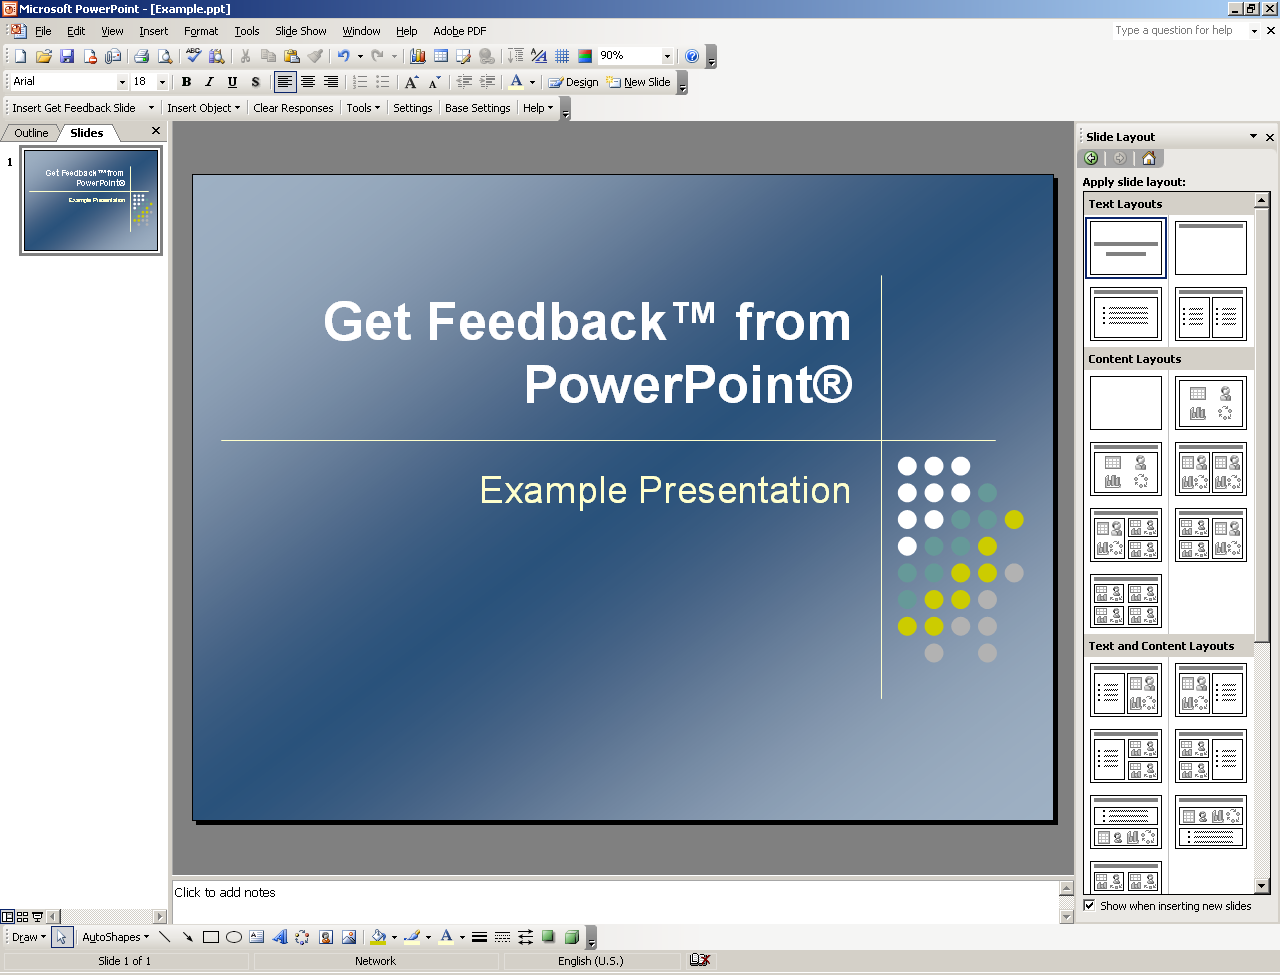 Step 1: Create Get Feedback from PowerPoint Slides Click the New Blank Document icon to create a new presentation. Pick a slide layout, color scheme and default design template as required.